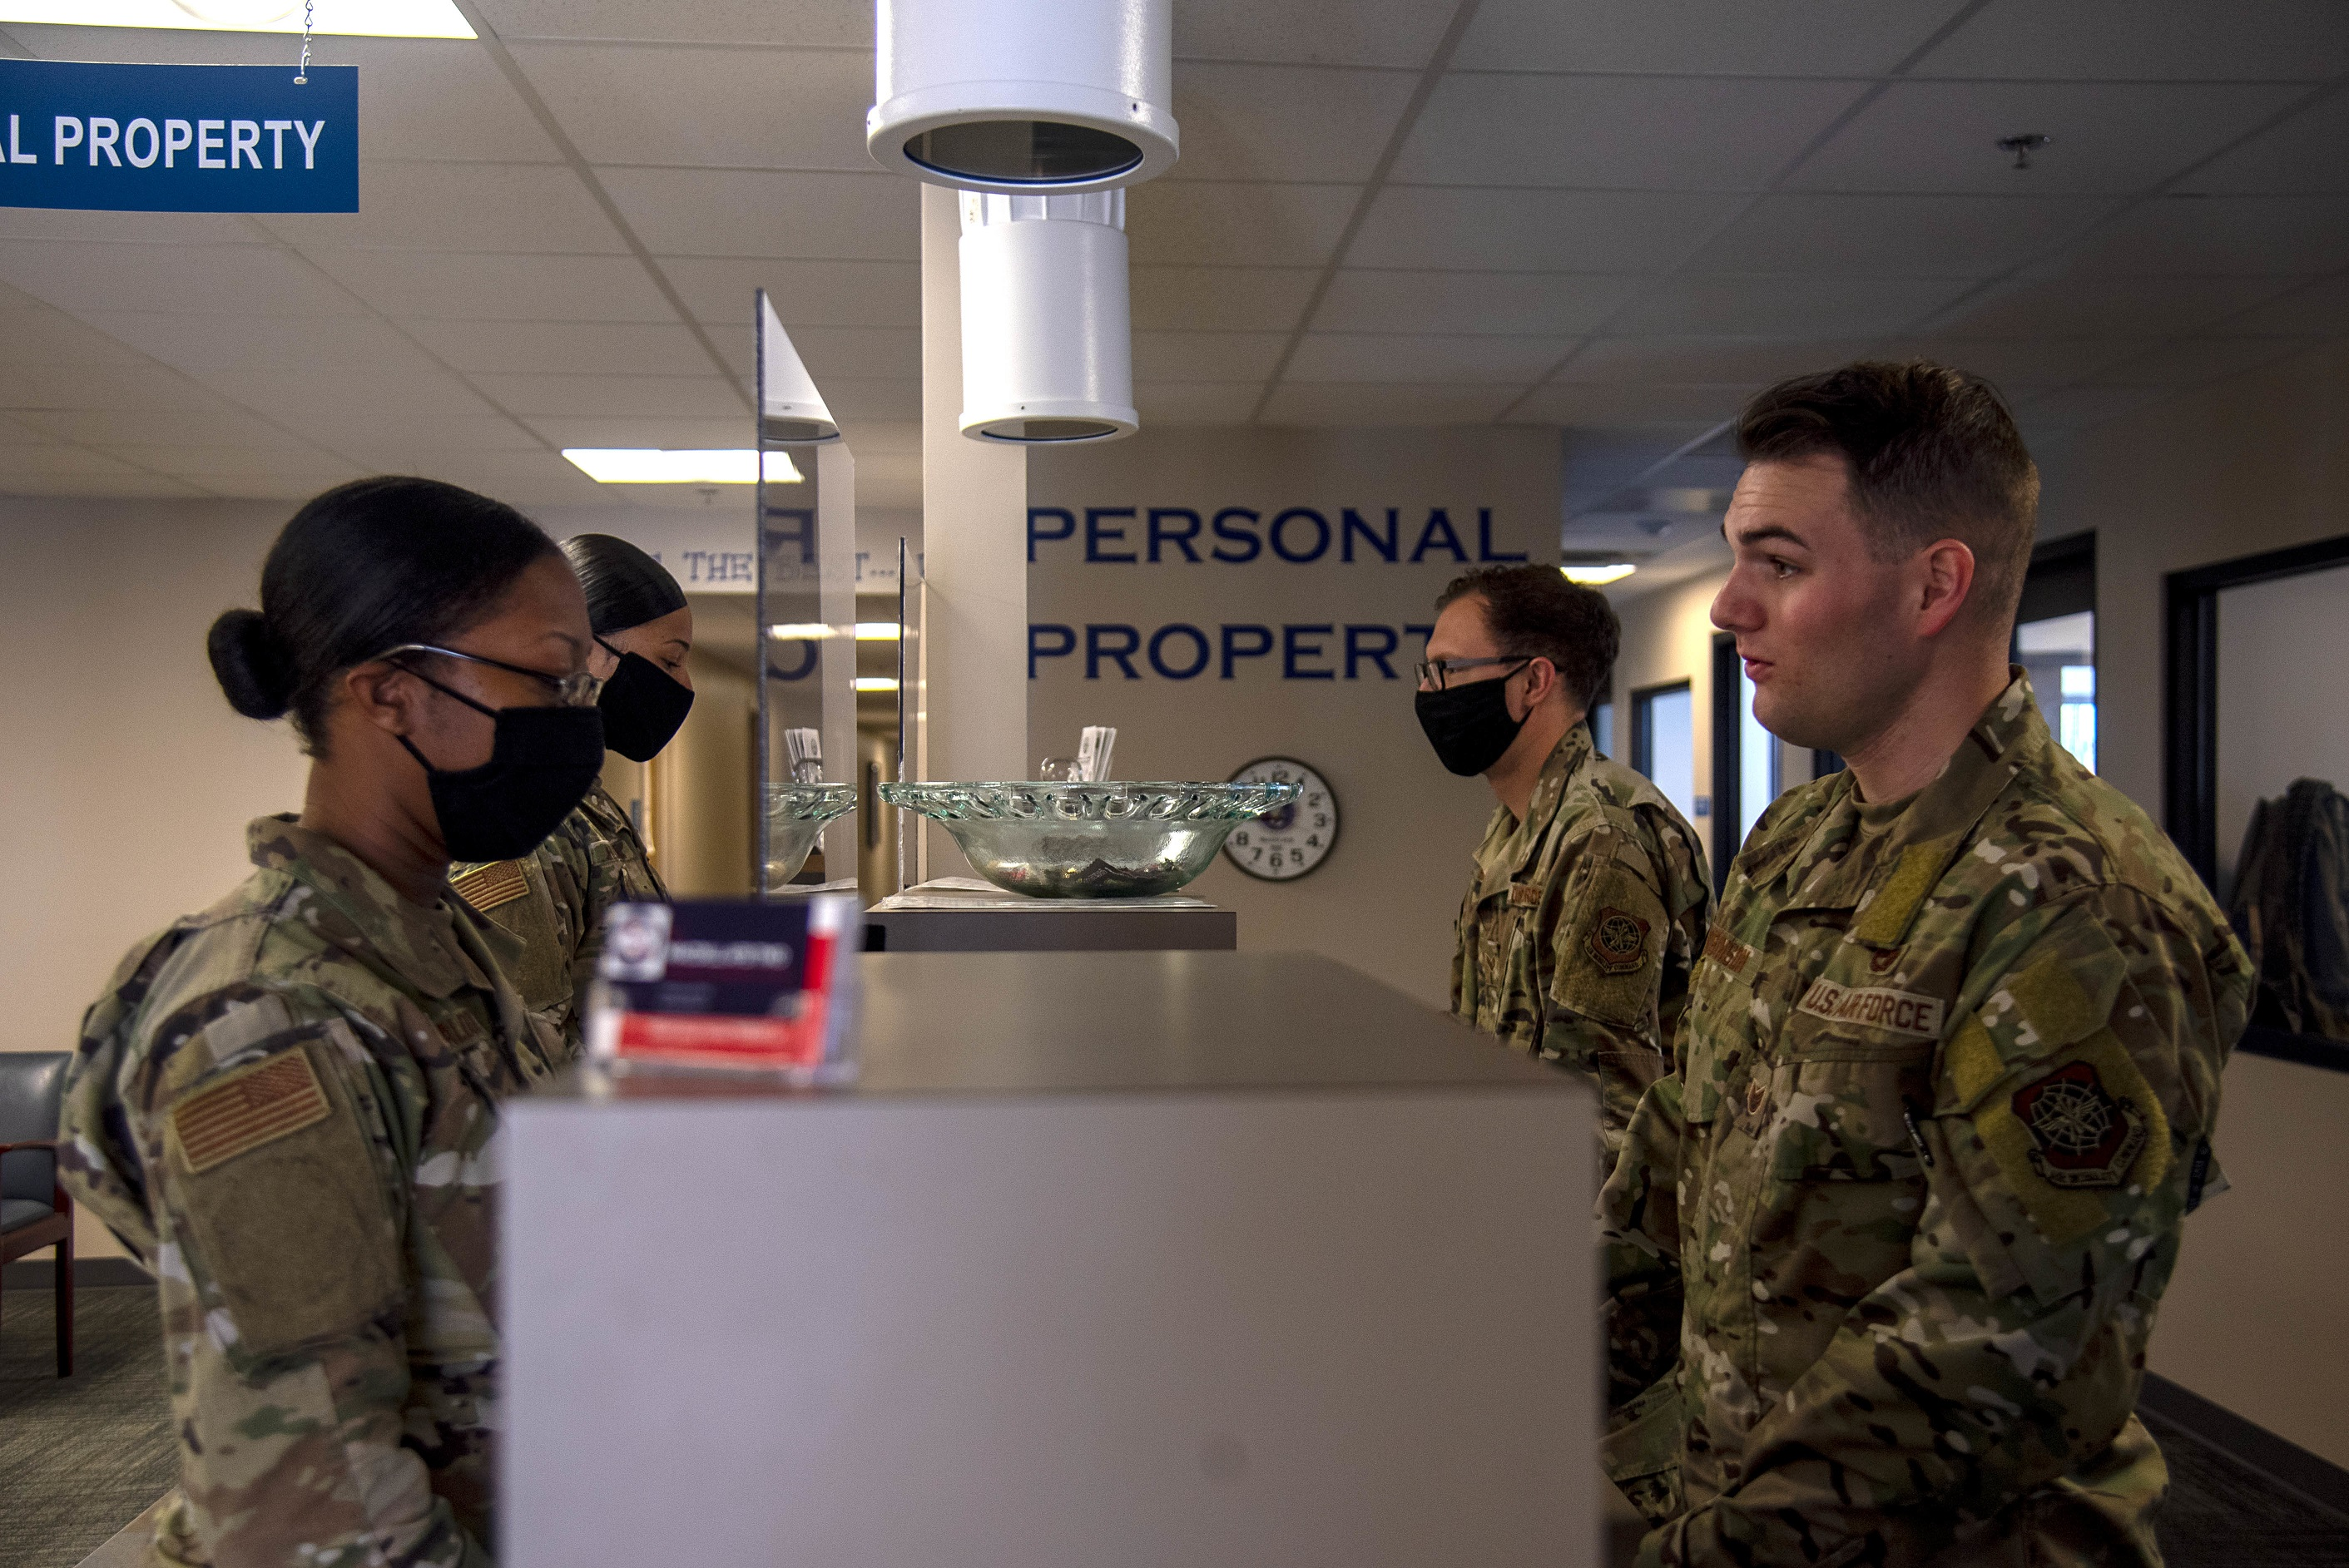 A U.S. Air Force Airmen receives a briefing about the 6th Logistics Readiness Squadron (LRS) Traffic Management Office (TMO) personal property office's responsibilities at MacDill Air Force Base, Florida, May 26, 2021.